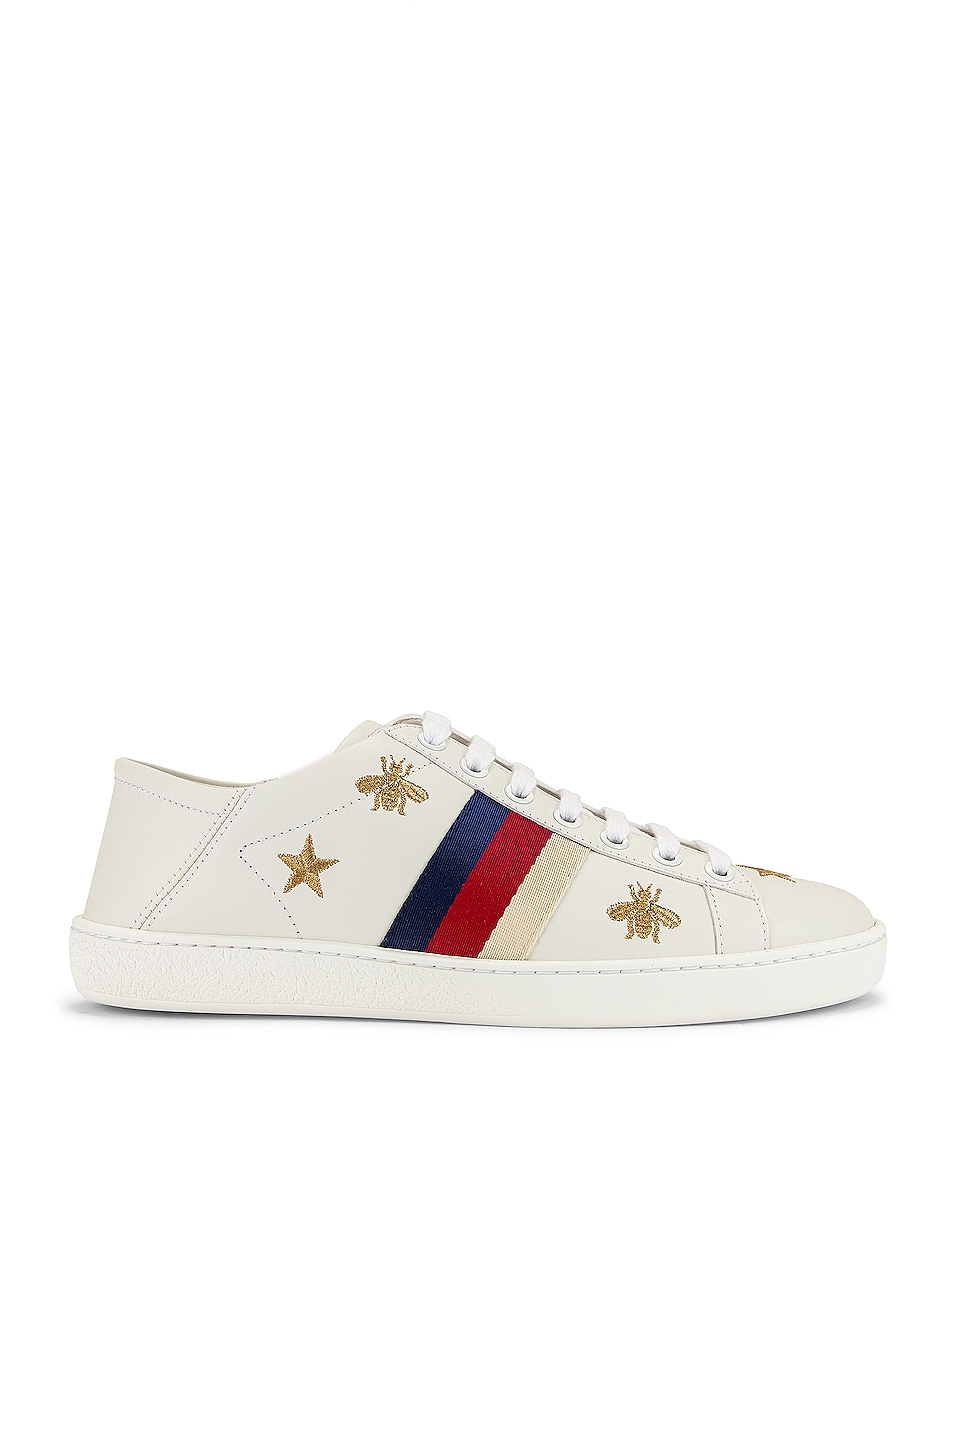 Image 1 of Gucci New Ace Sneakers in White